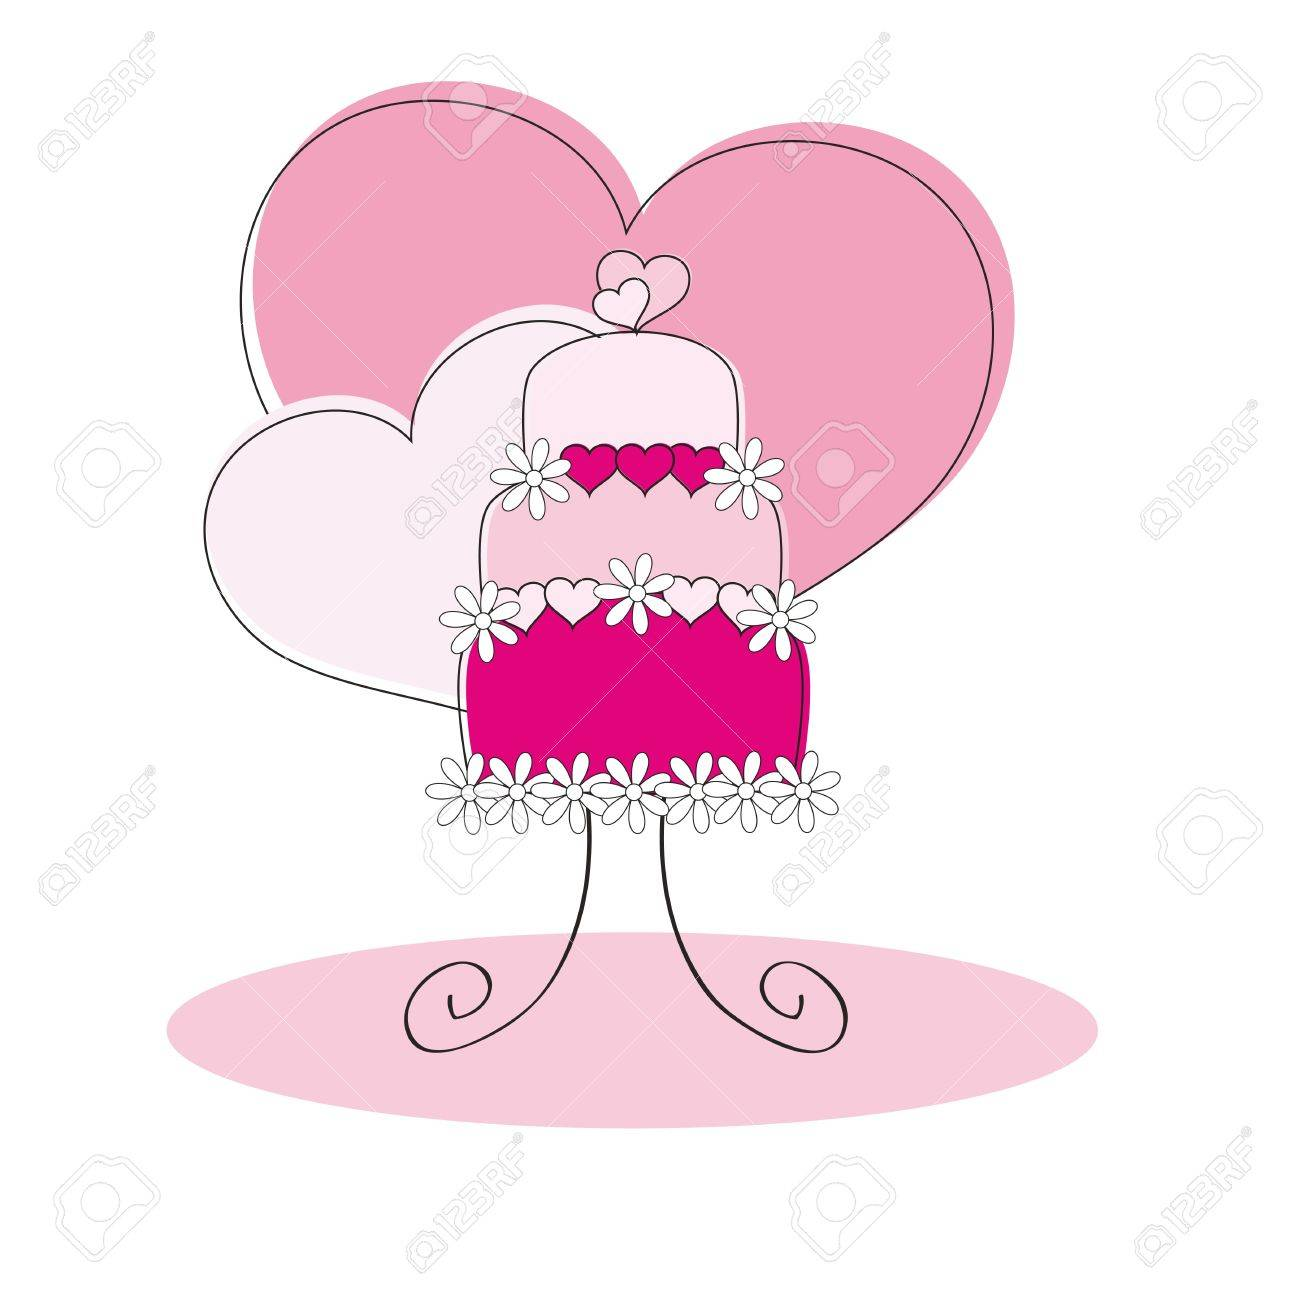 Cute card on special day Stock Vector - 10320493